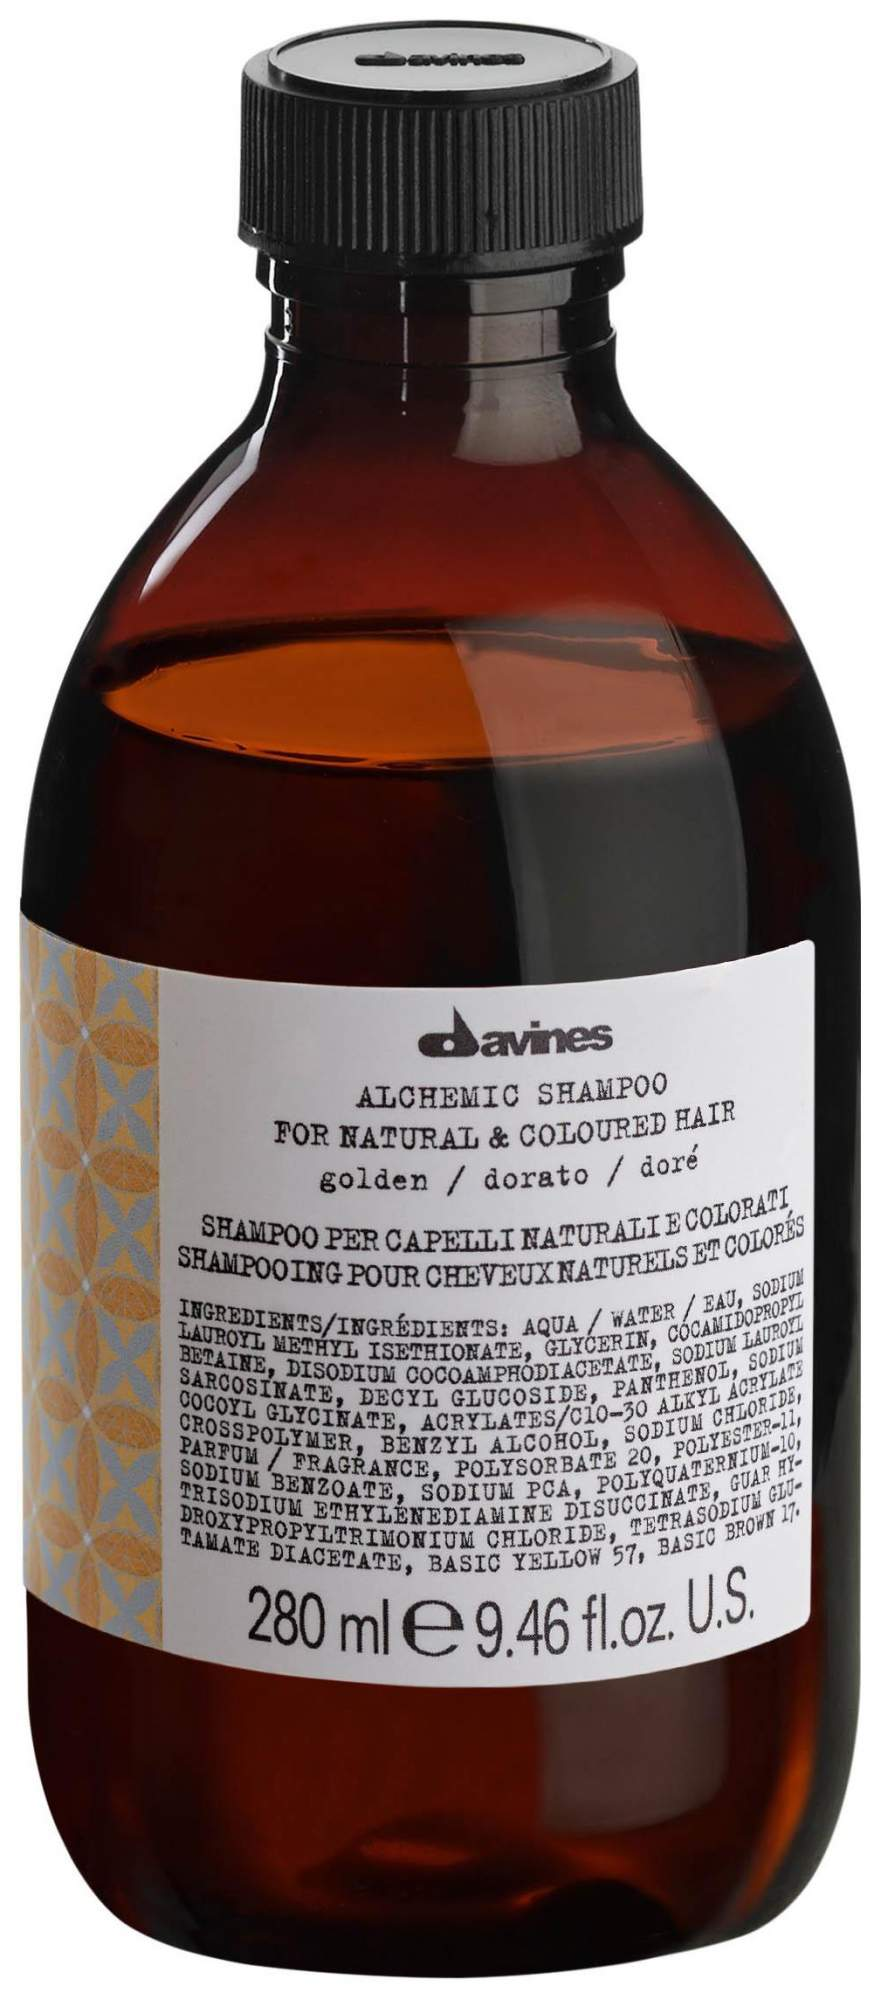 Davines Alchemic Golden Shampoo Золотой шампунь (280 ml) 67207